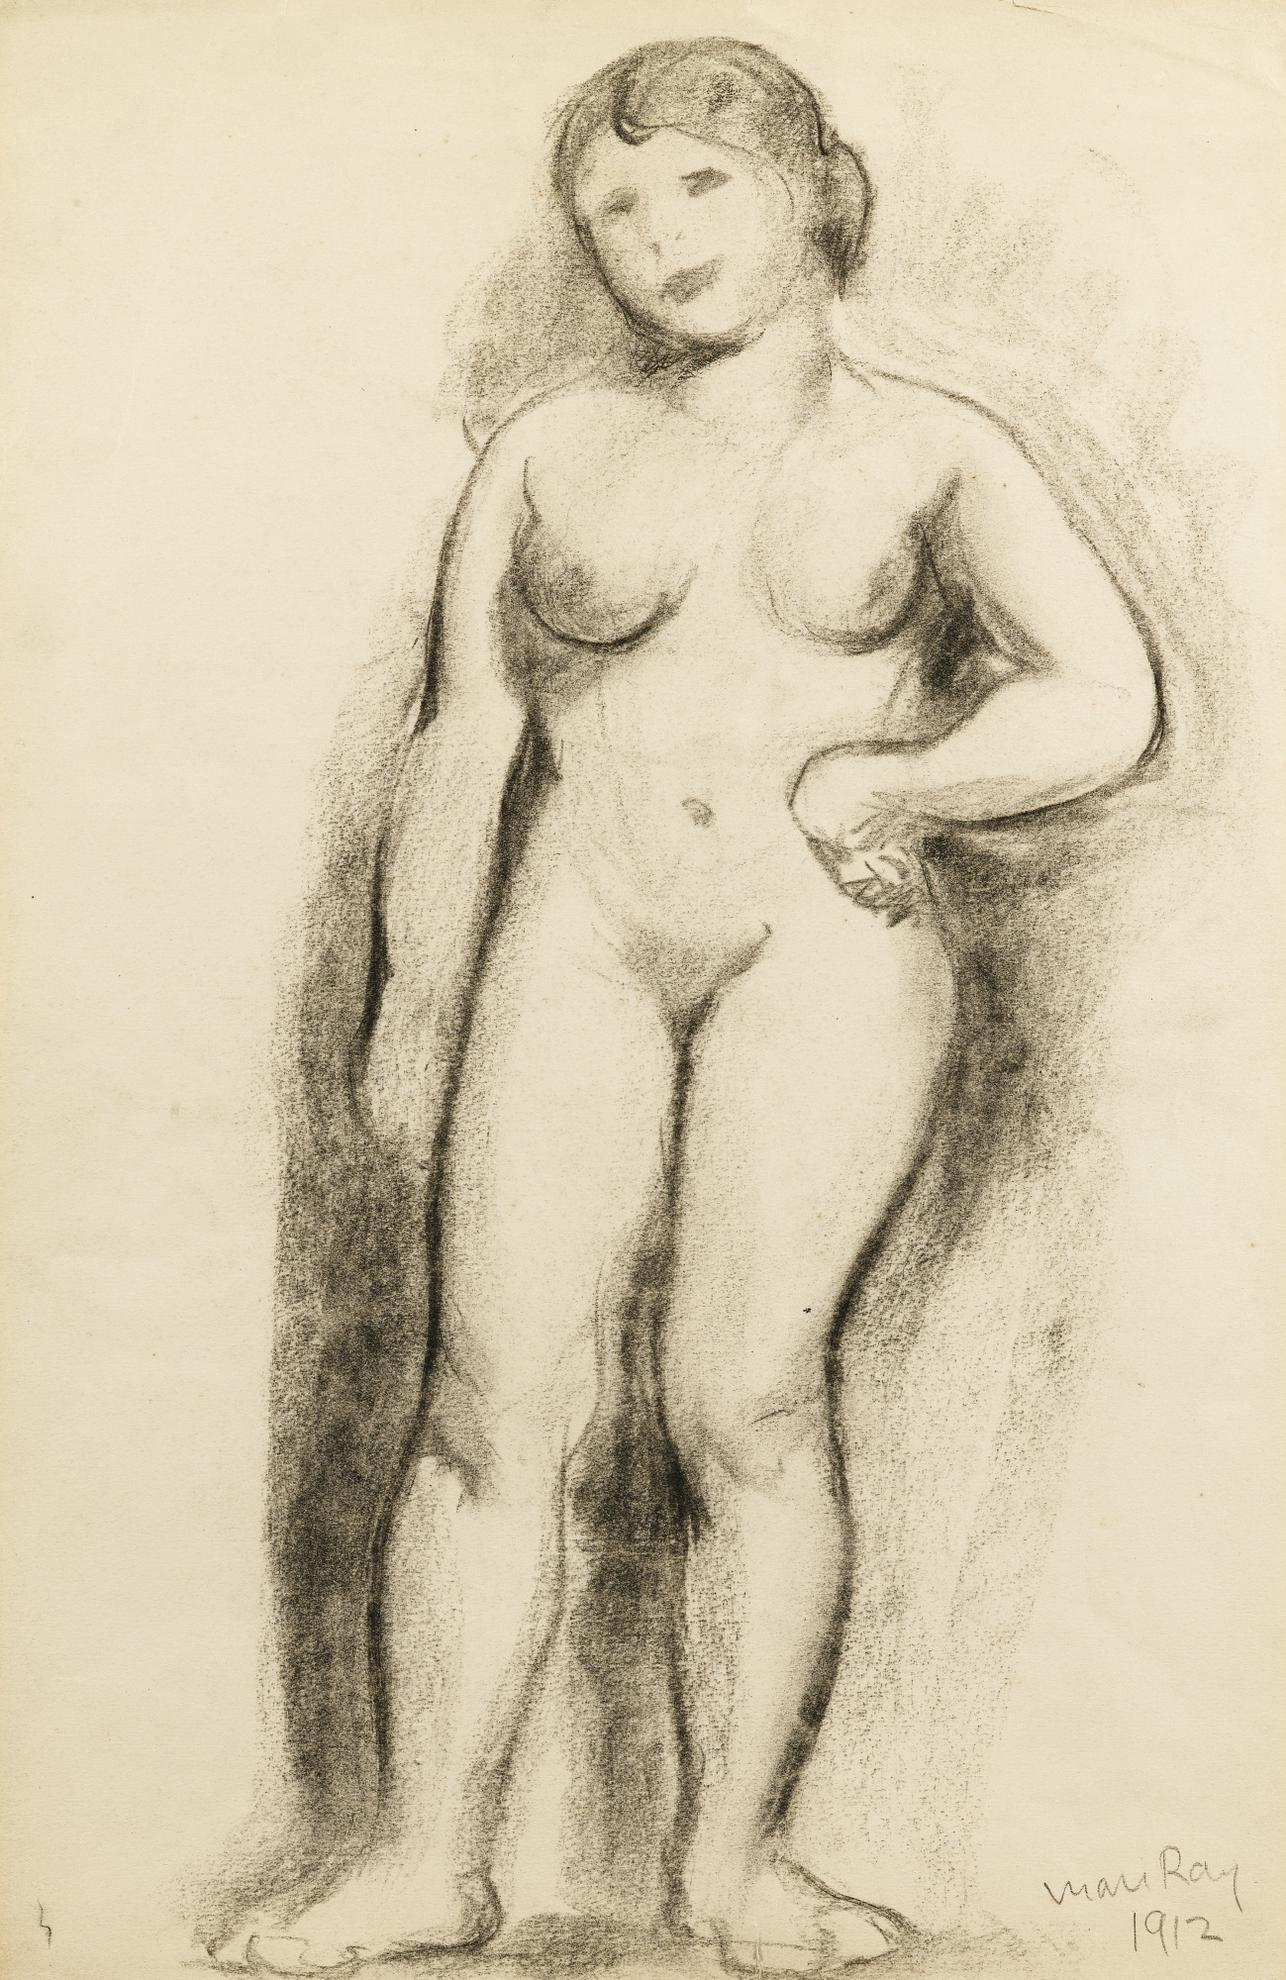 Man Ray-Standing Nude (Ariel Durant)-1912